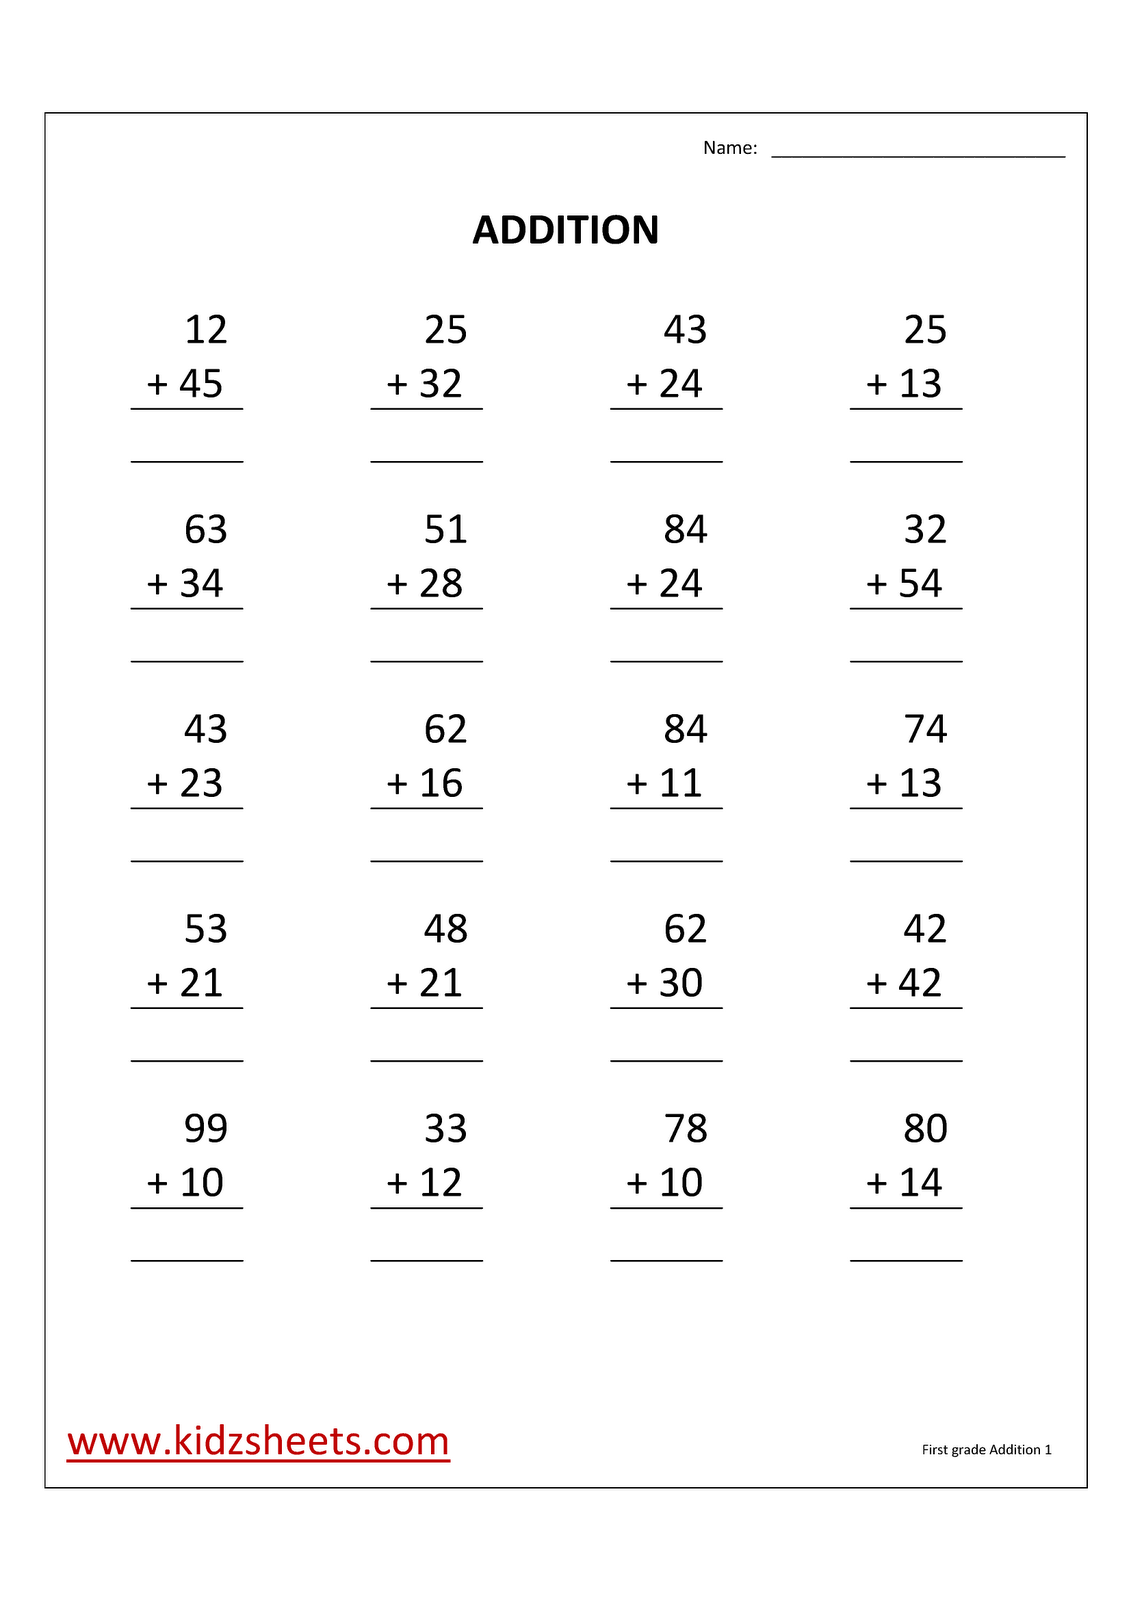 Worksheet Addition Sheets For First Grade math addition worksheets for 1st grade 10 fgaddition1 1st